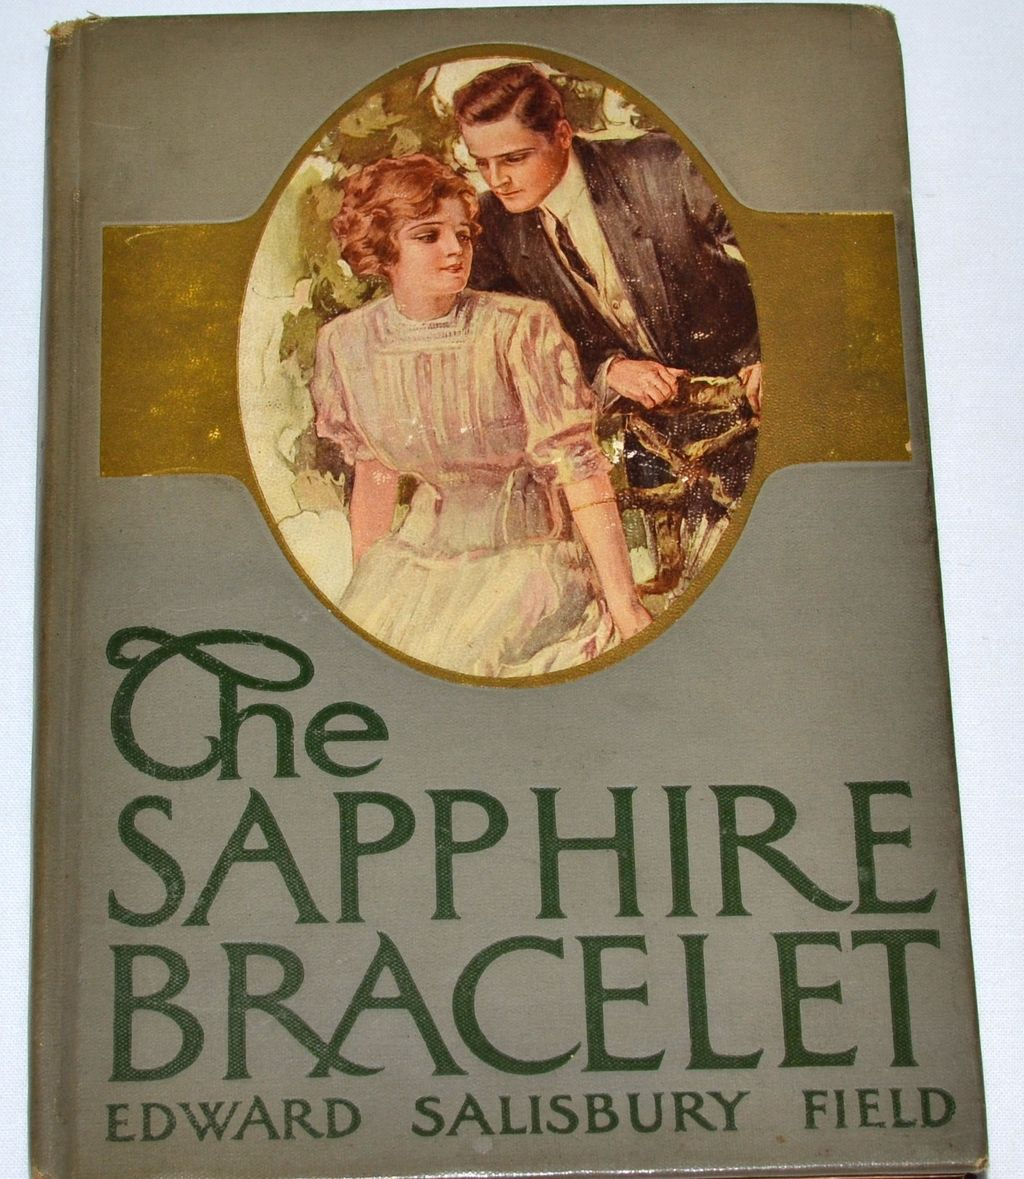 1910 The Sapphire Bracelet Hardcover Book